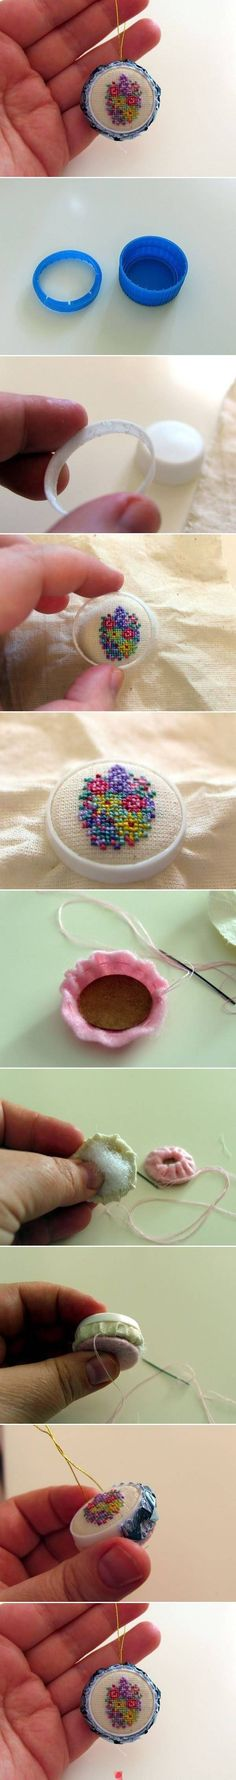 Make your own embroidered buttons #diy #crafts #embroidery #howto